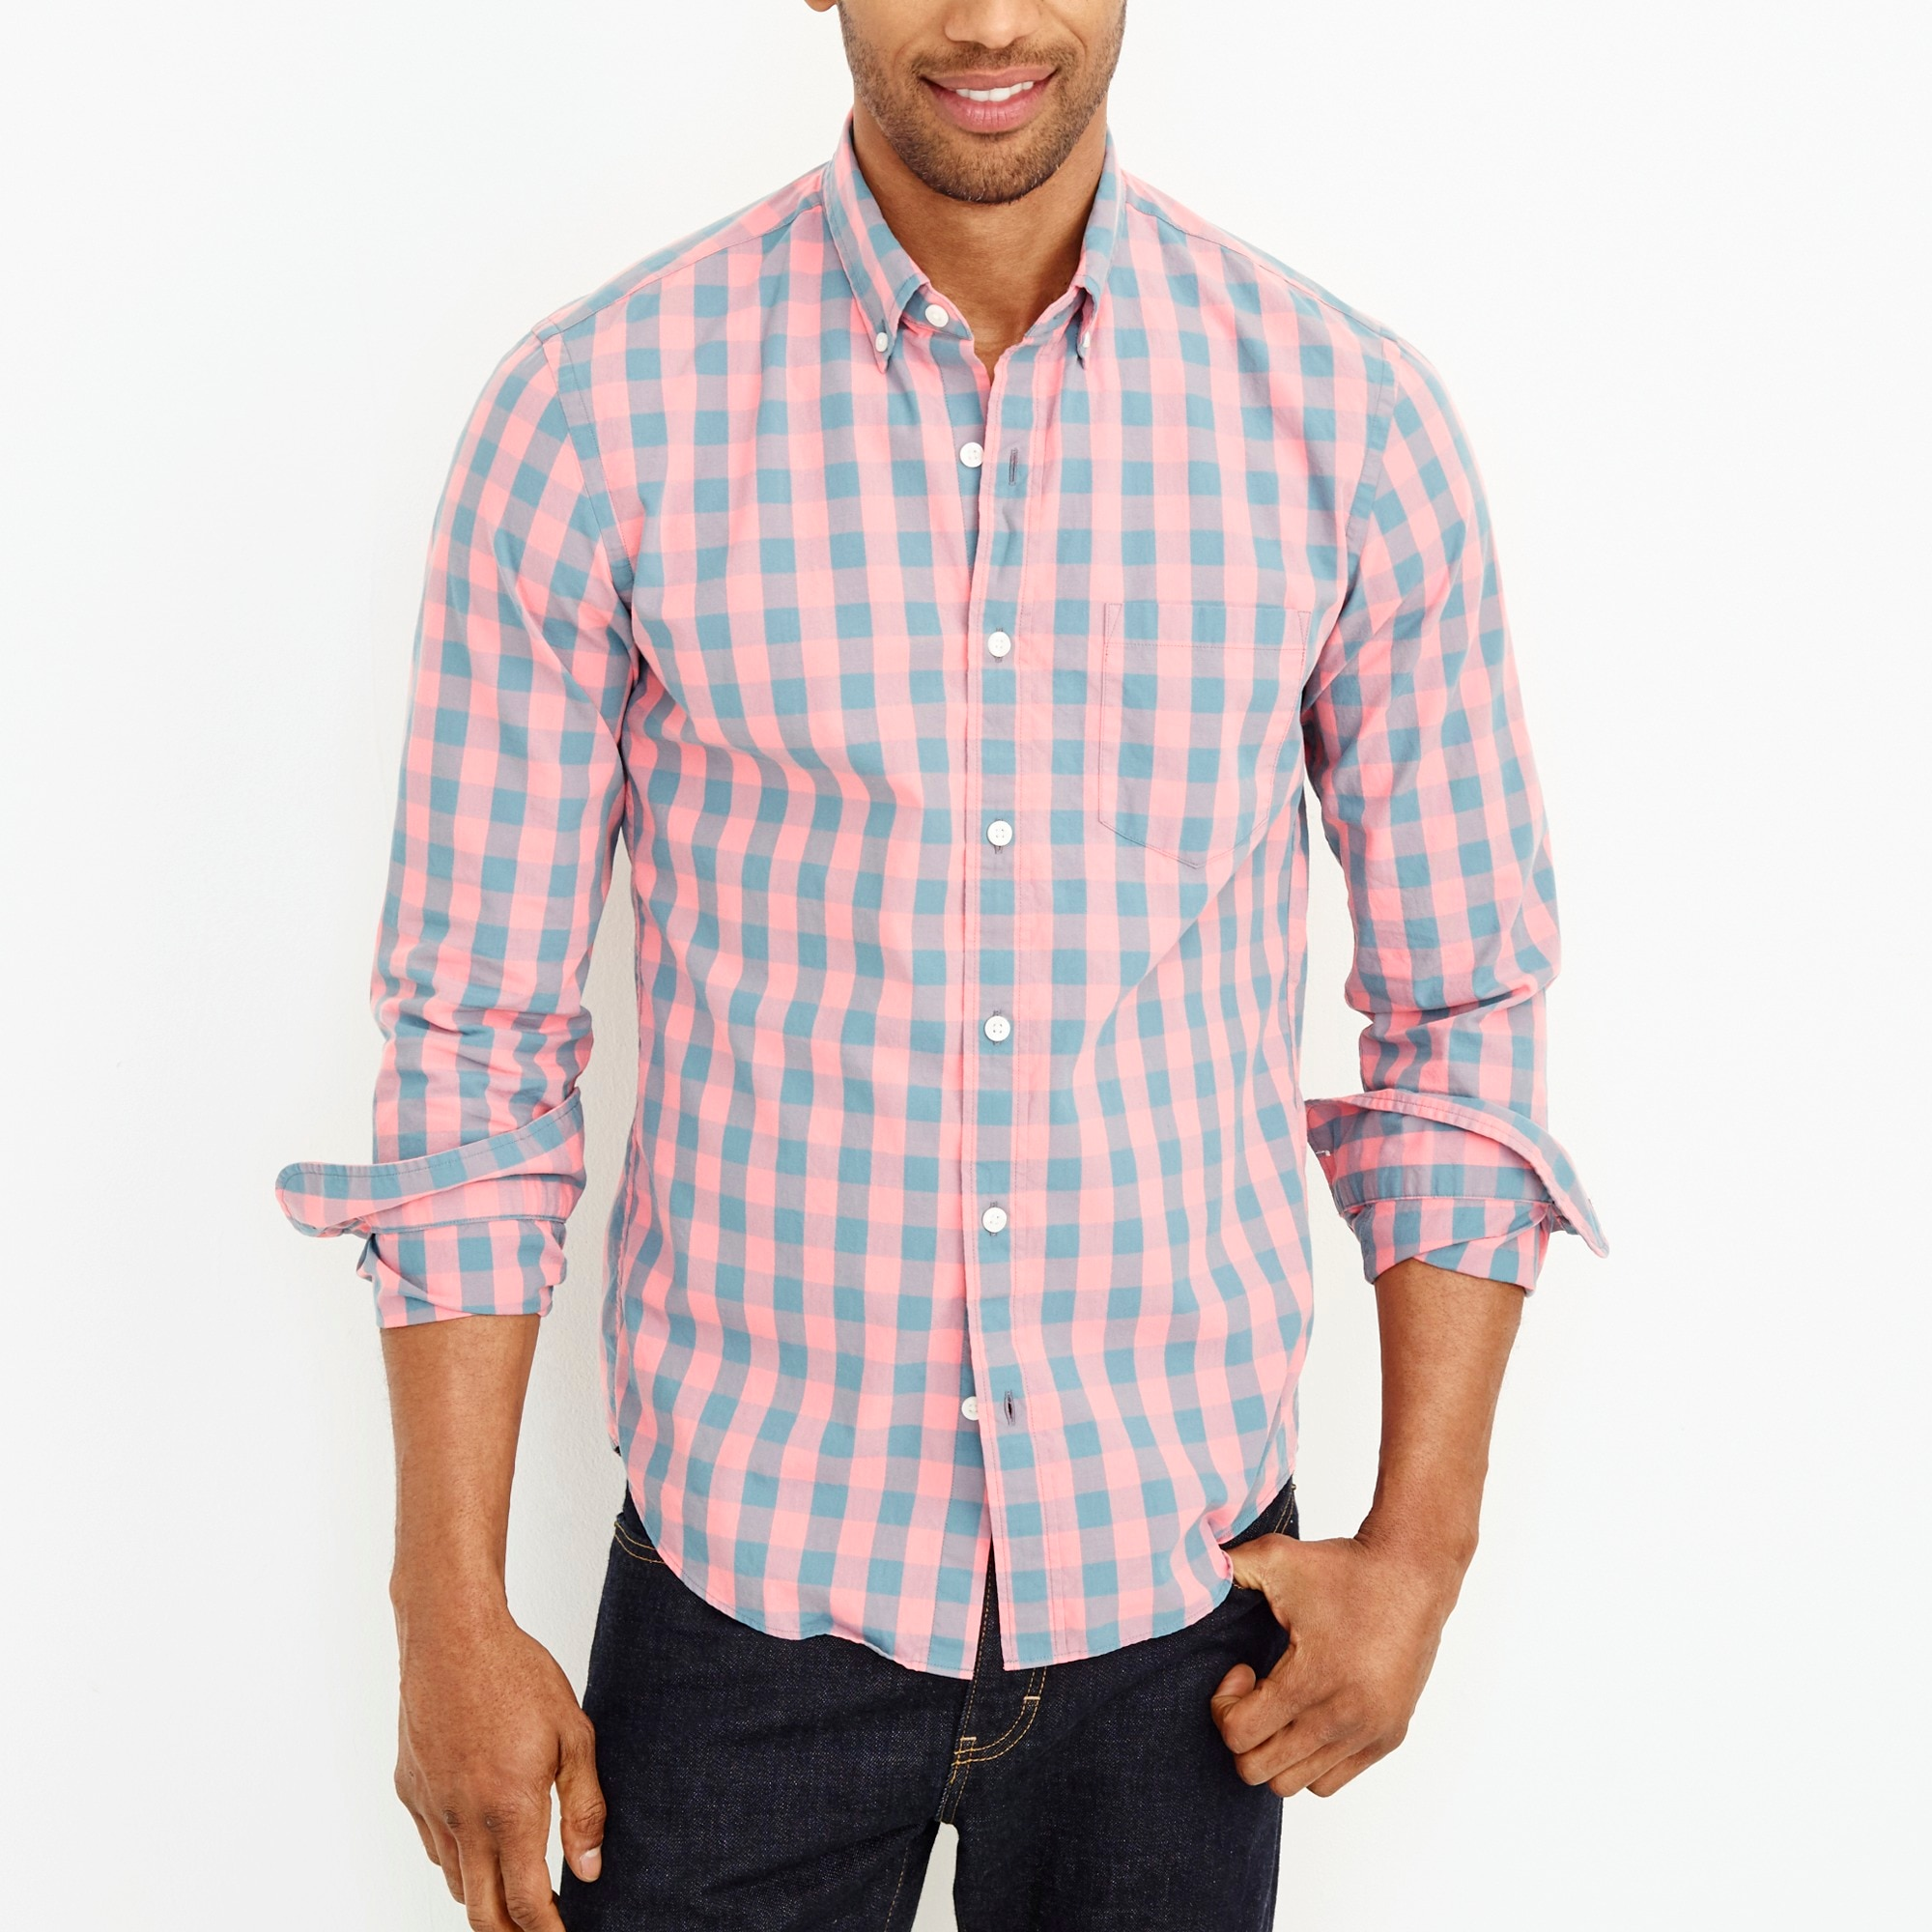 men's washed shirt in gingham - men's woven shirts